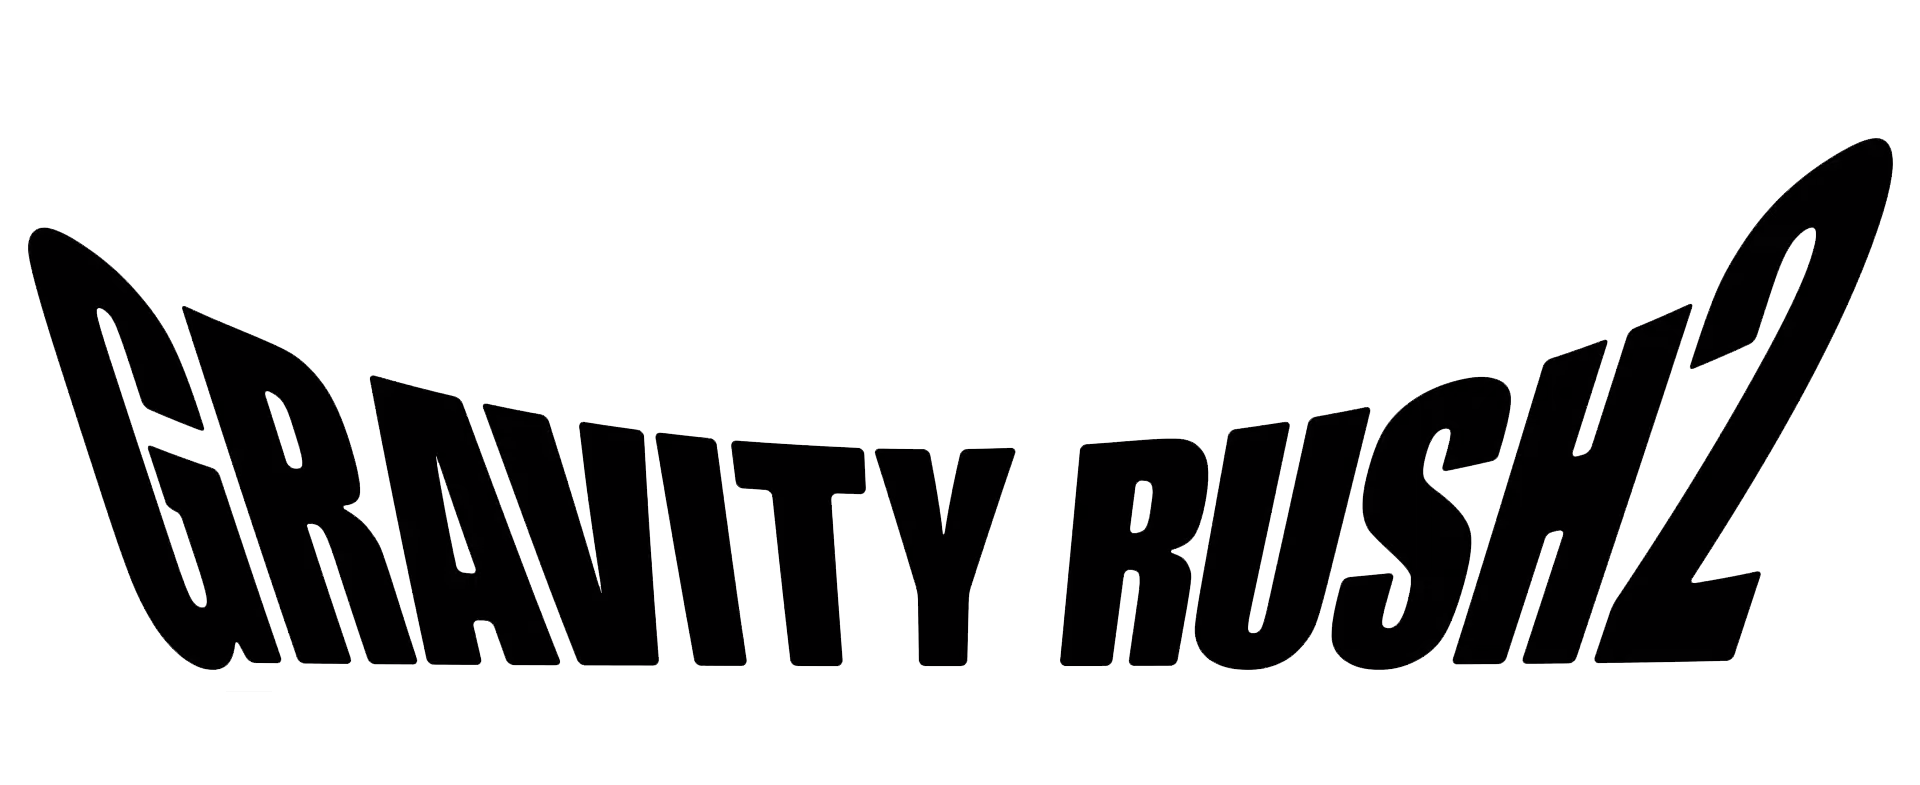 Gravity Rush Logo Clipart PNG Image